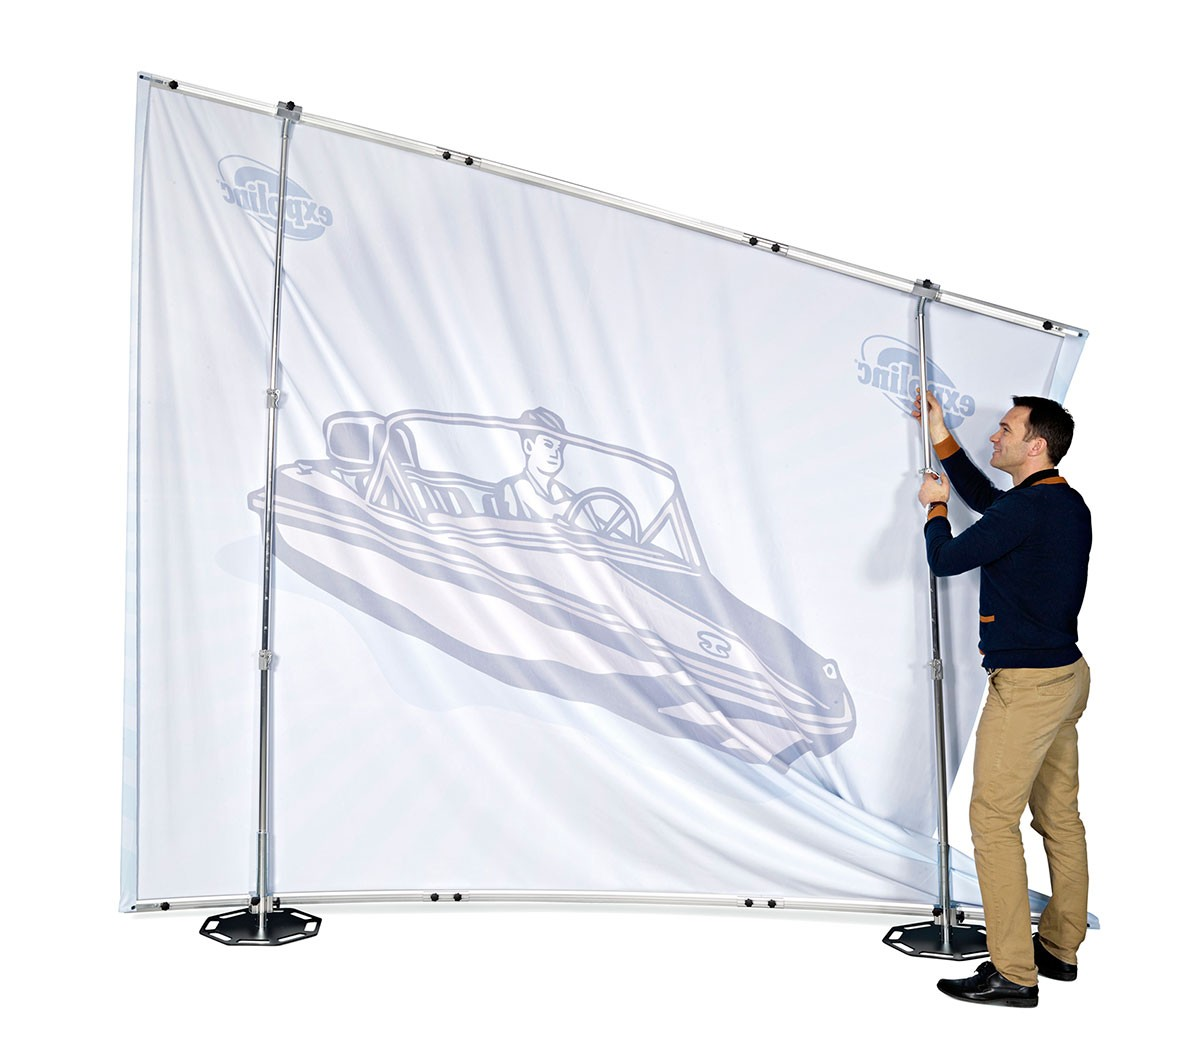 Expolinc Fabric System 8x8 Inner Curve Wall